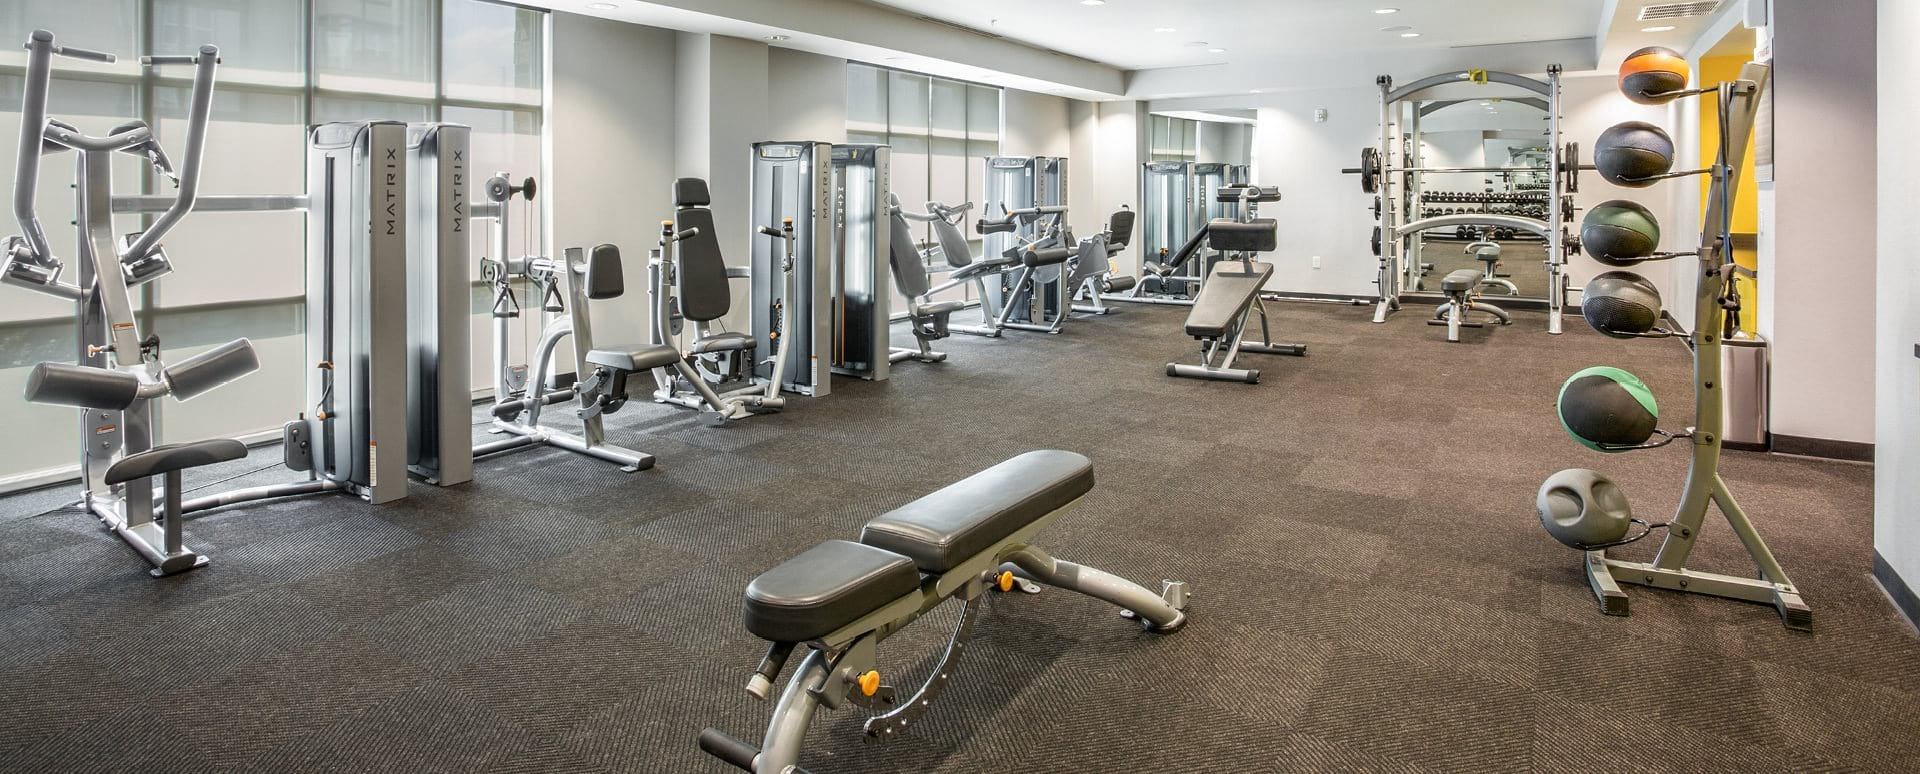 Oak Lawn apartments with fitness center